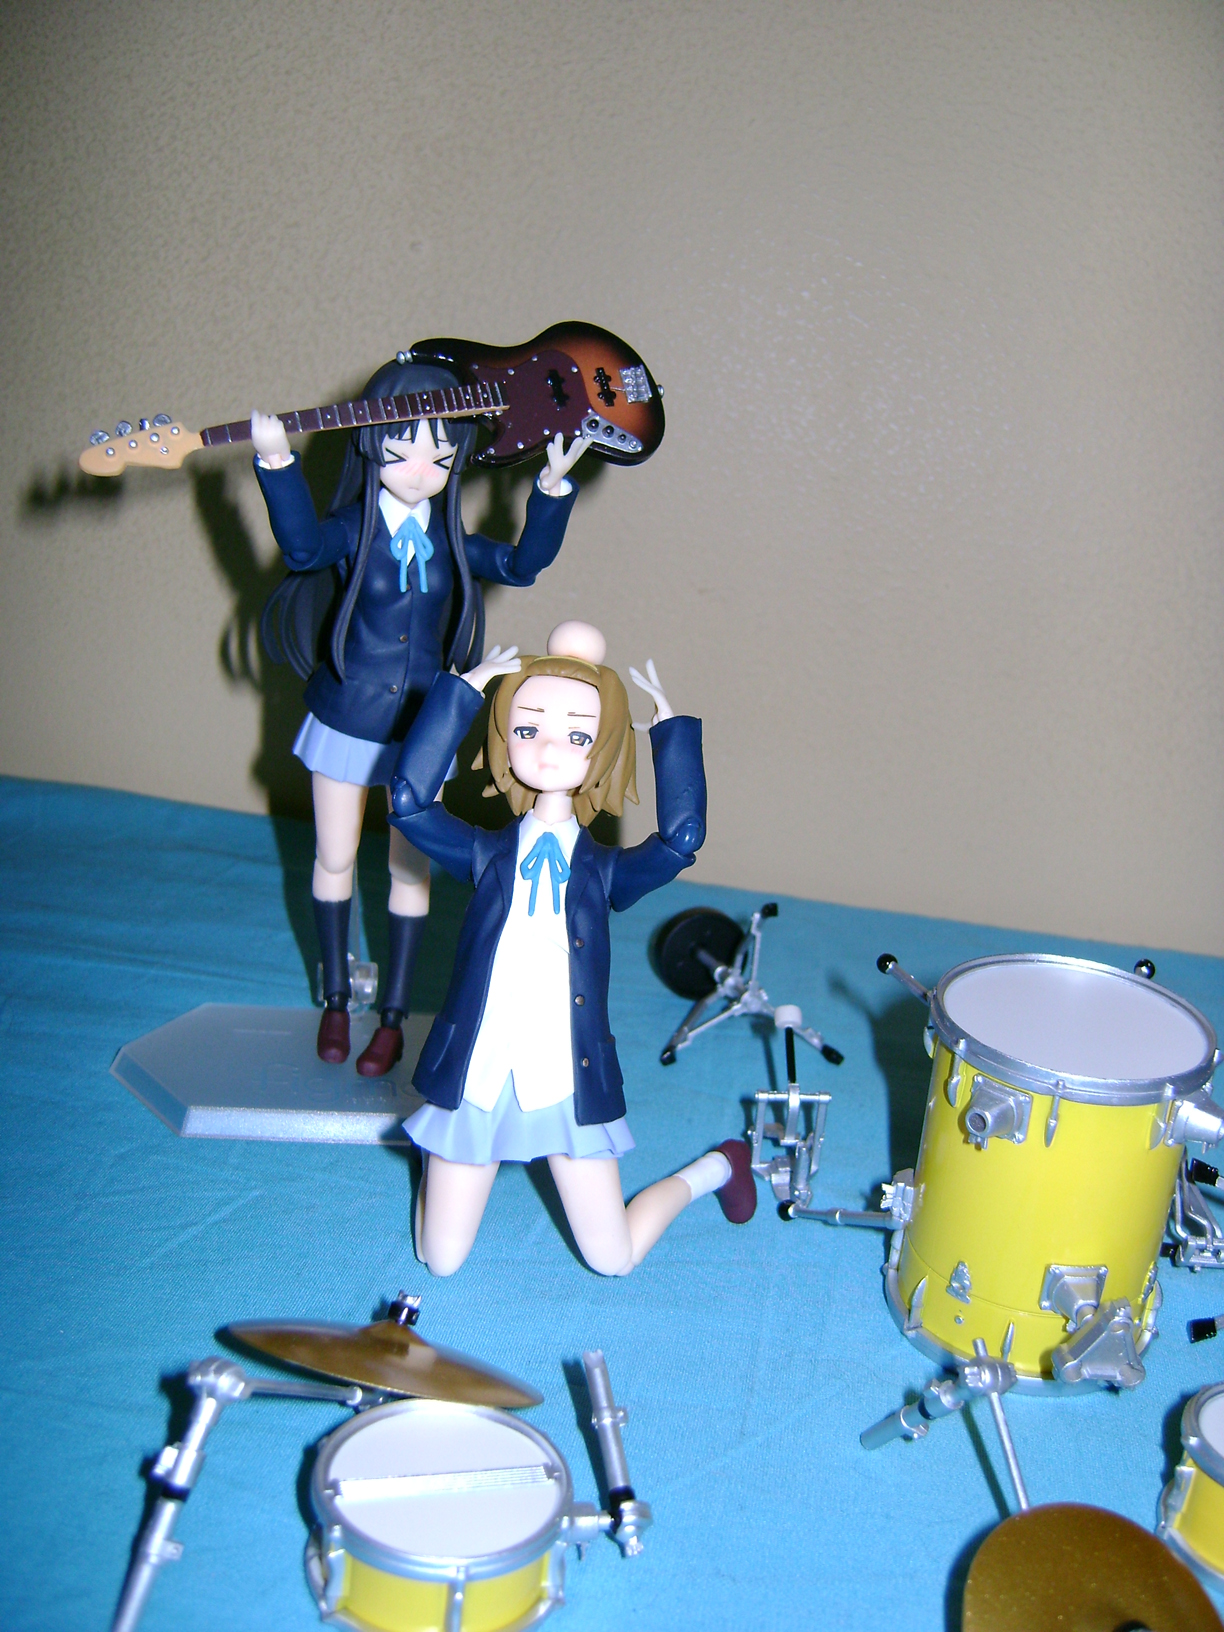 Keion F 12 K ON: Mio And Ritsu, Figma Action Figures!